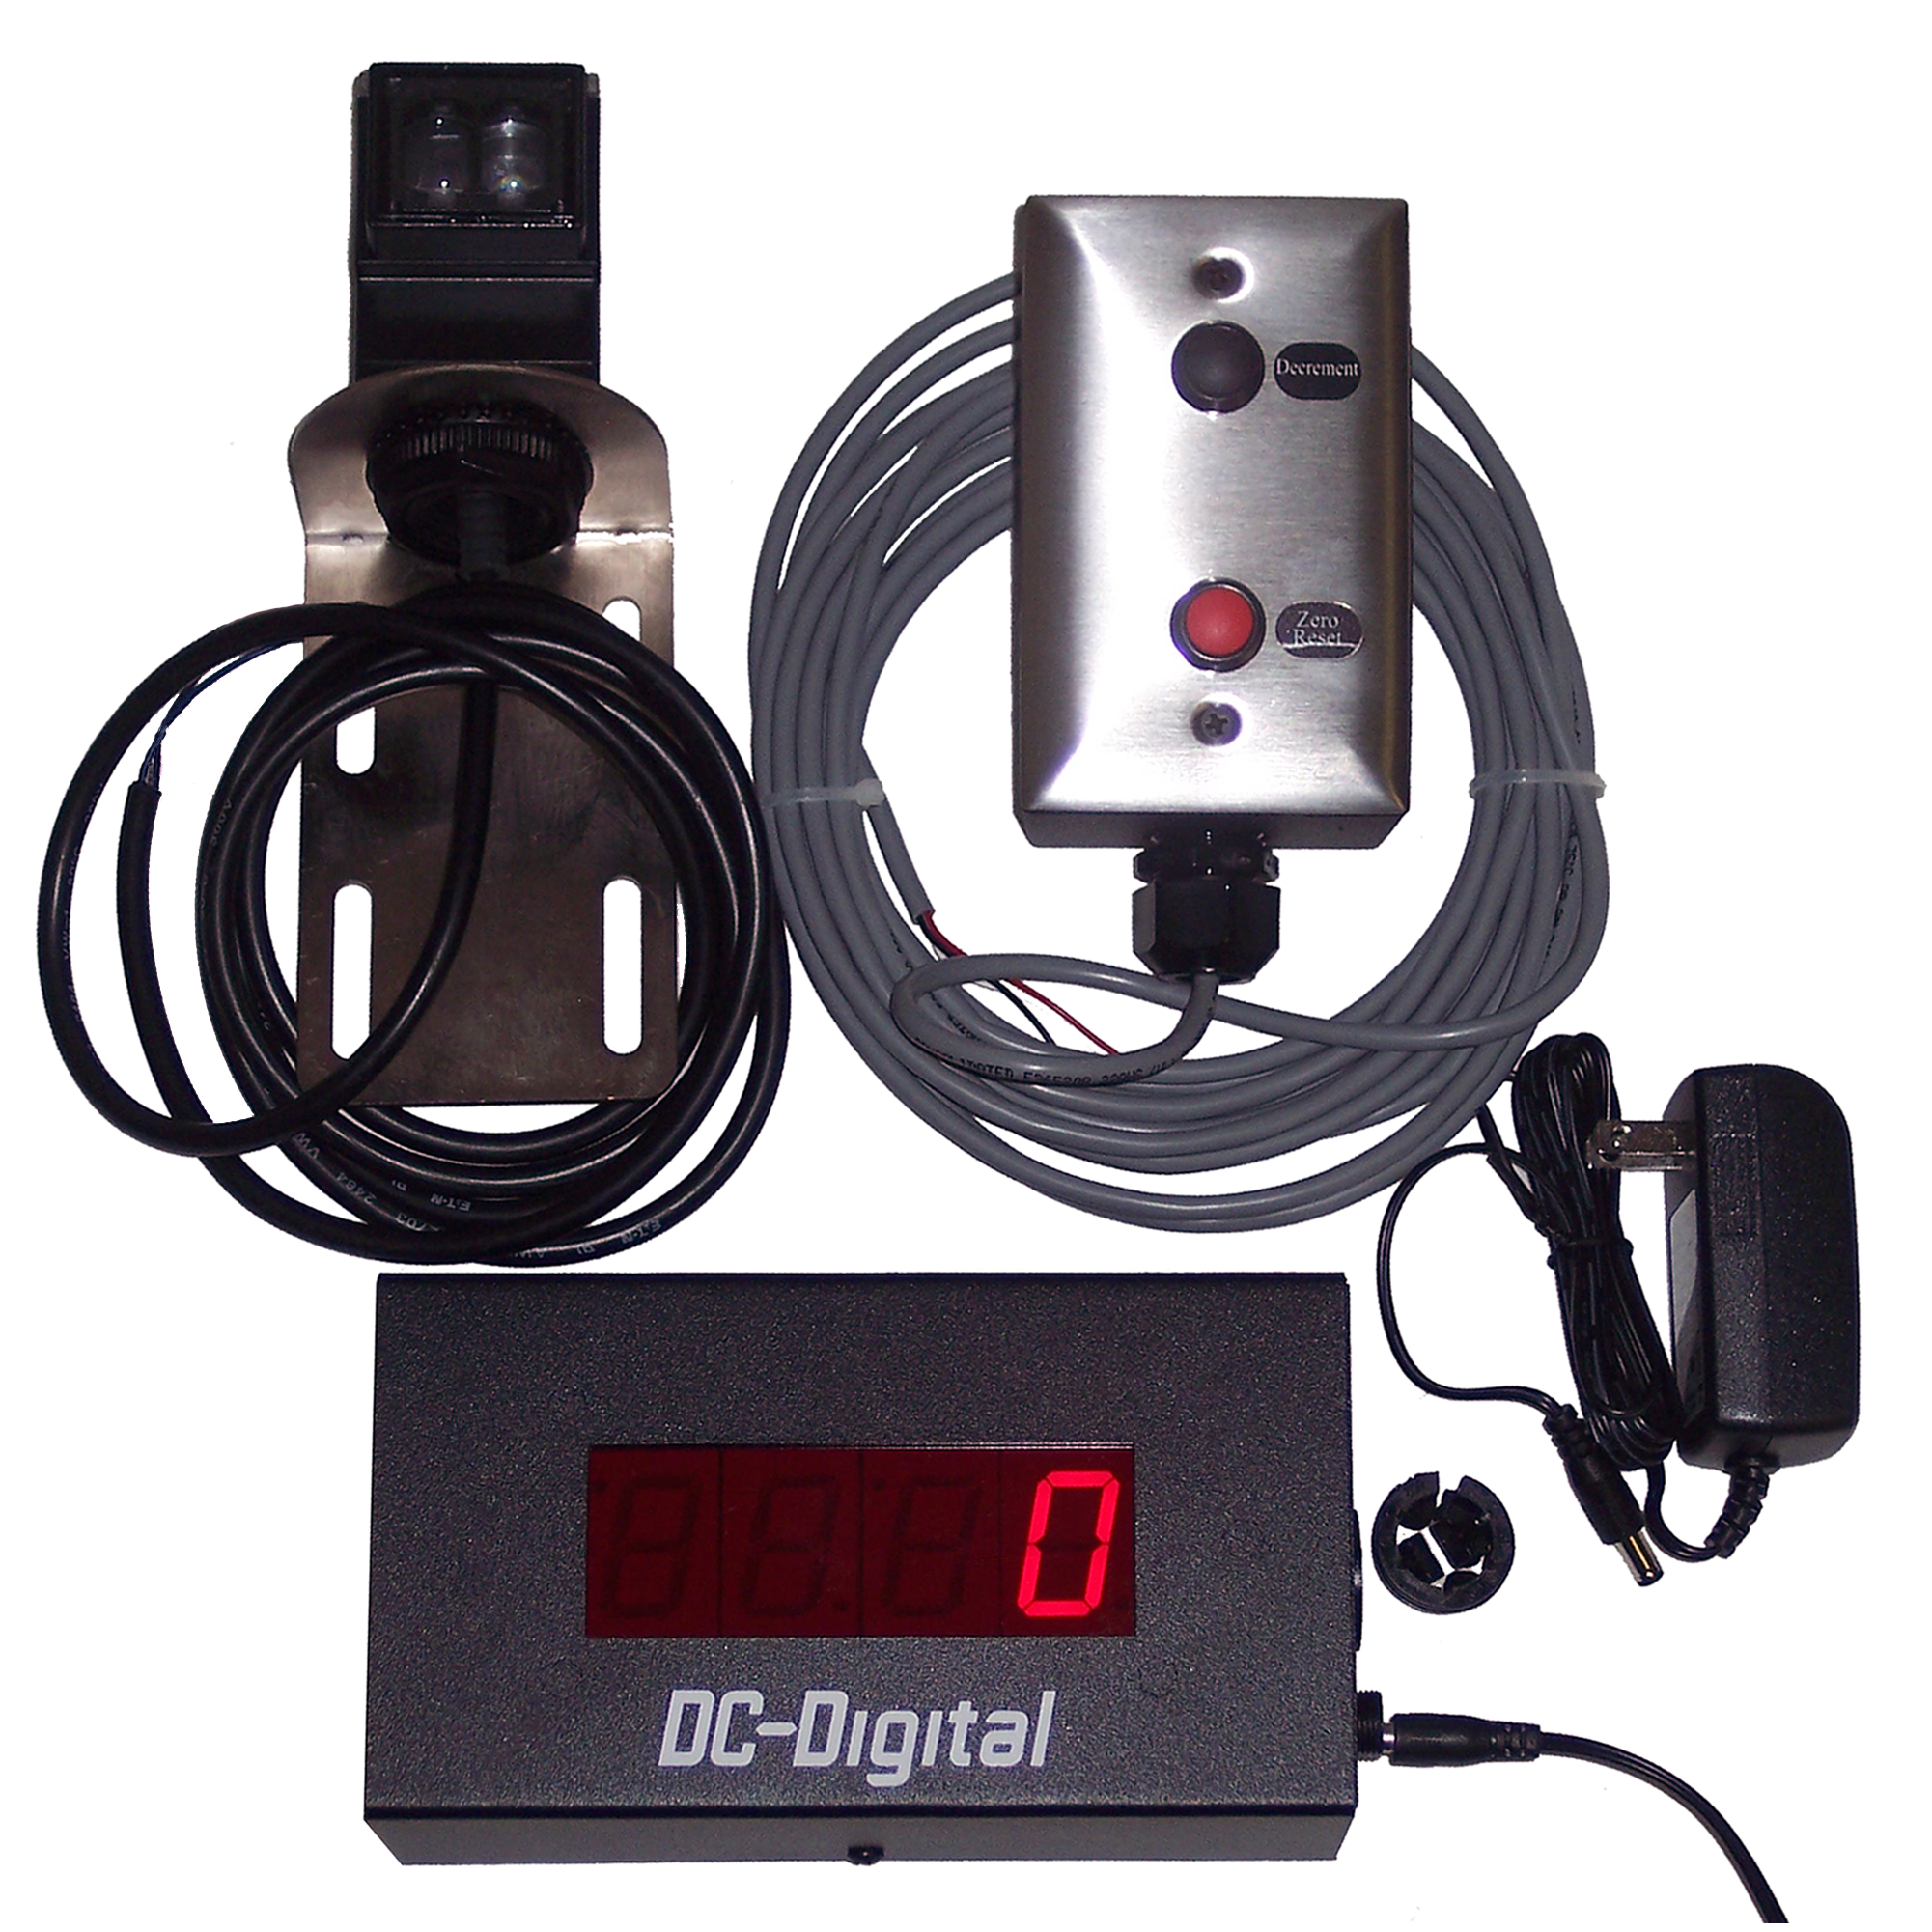 (DC-10C-PKG) 1.0 Inch LED Digital Counter, Diffused Reflective Sensor (10ft. Range) and Mount, and 2-Environmentally Sealed Push-Buttons with Junction Box and 25Ft. of Cabling (SW-RMSS-2-RED-BLK)